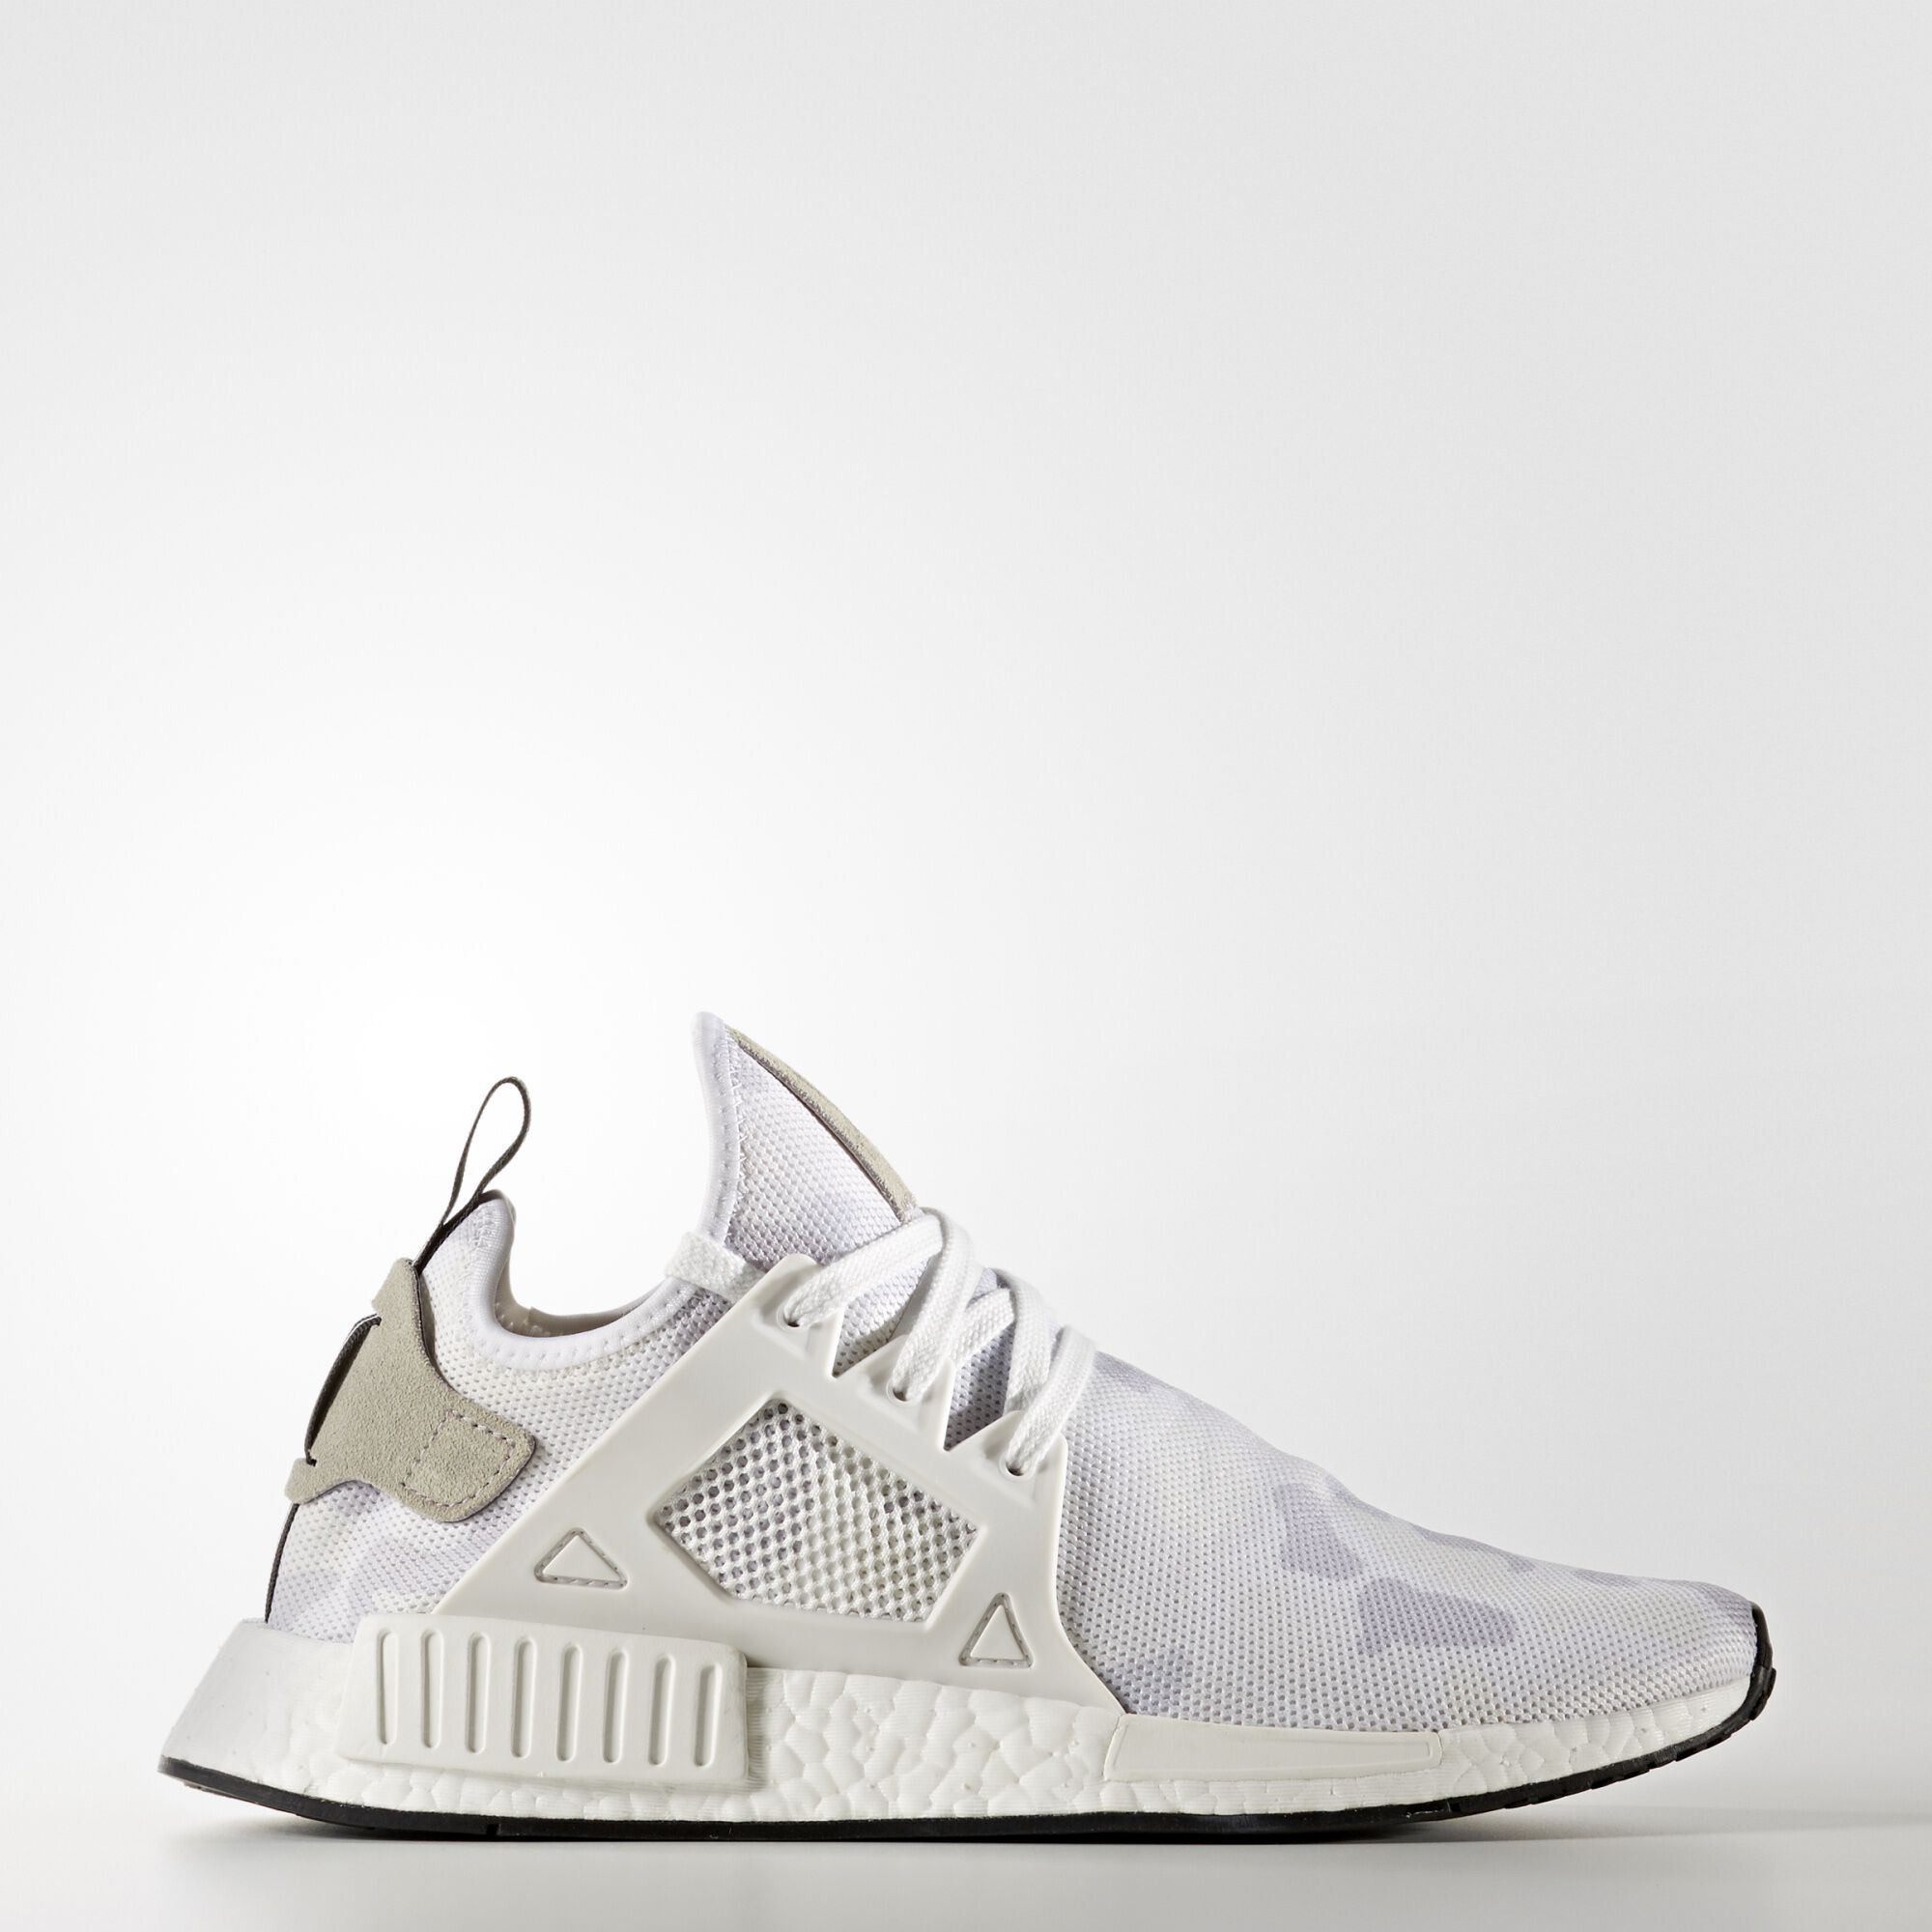 brmfvh adidas NMD Shoes - R1, R2, XR1 NMDs and More | adidas US